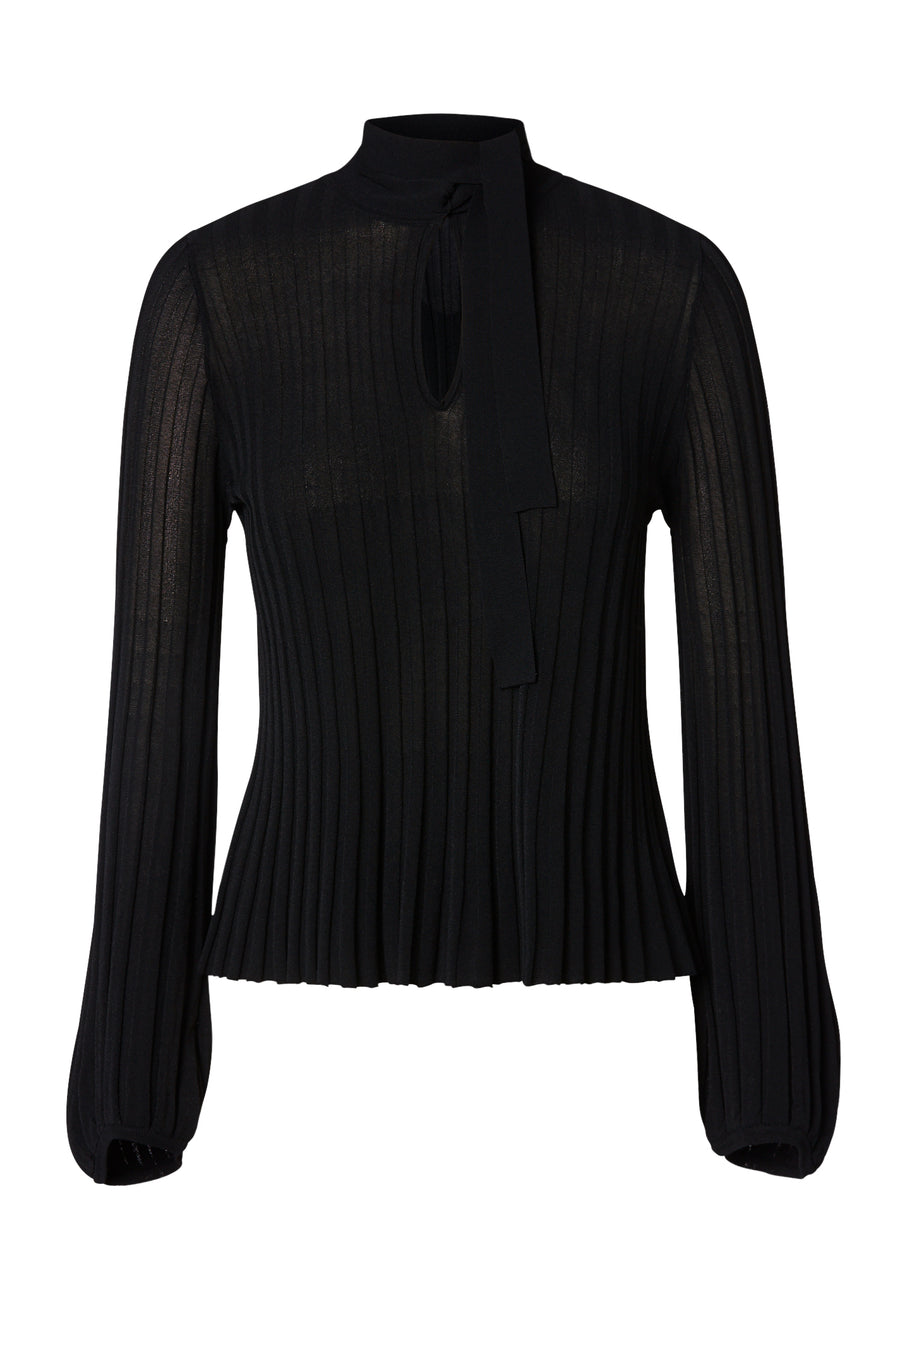 Pleated Rib Tie Neck Top, knitted in Italian Viscose/ Polyester, natural pleat, tie neck, top button fastening, peplum cuffs, Color Black